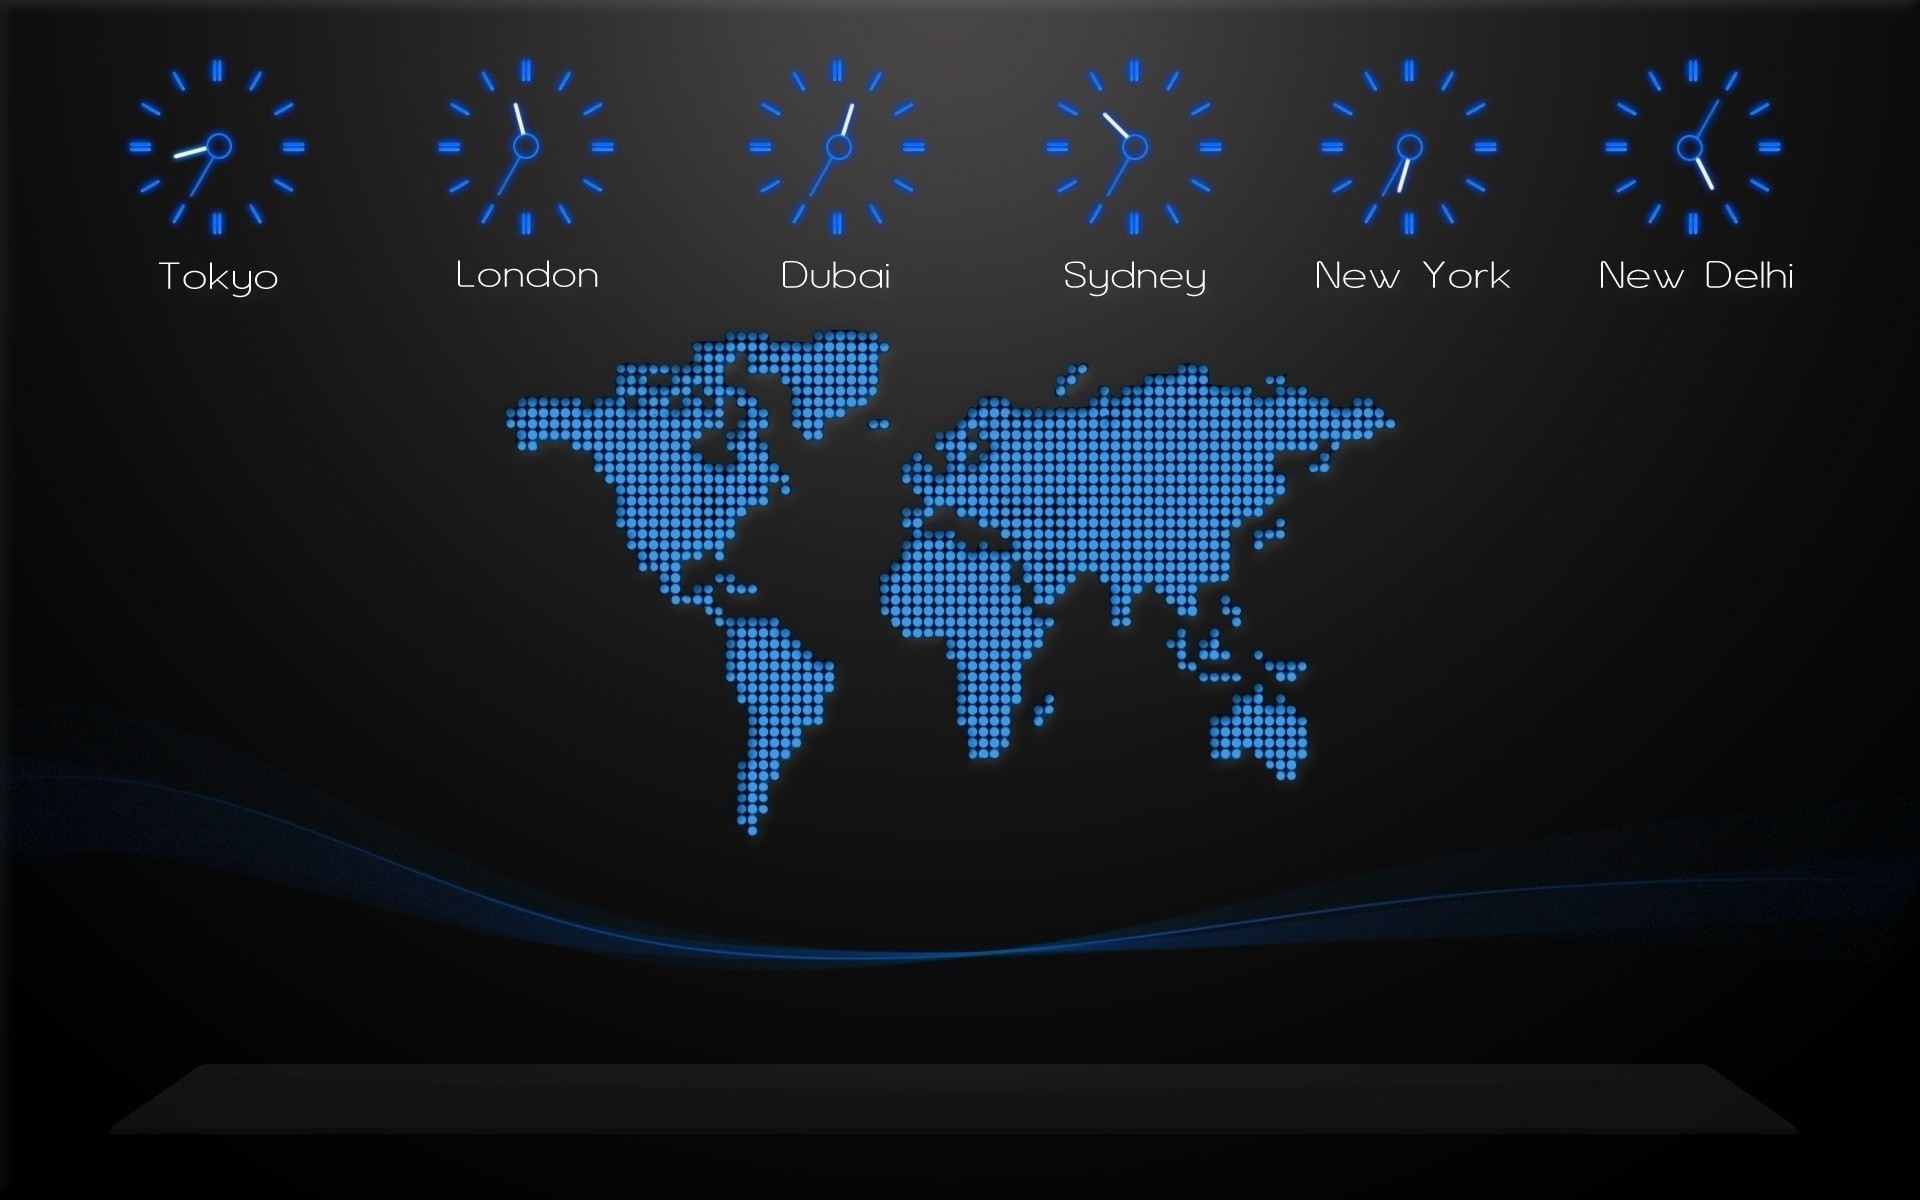 World map screensaver wallpaper 56 images 1920x1200 wallpaper textures simple map time world clocks desktop wallpaper gumiabroncs Image collections